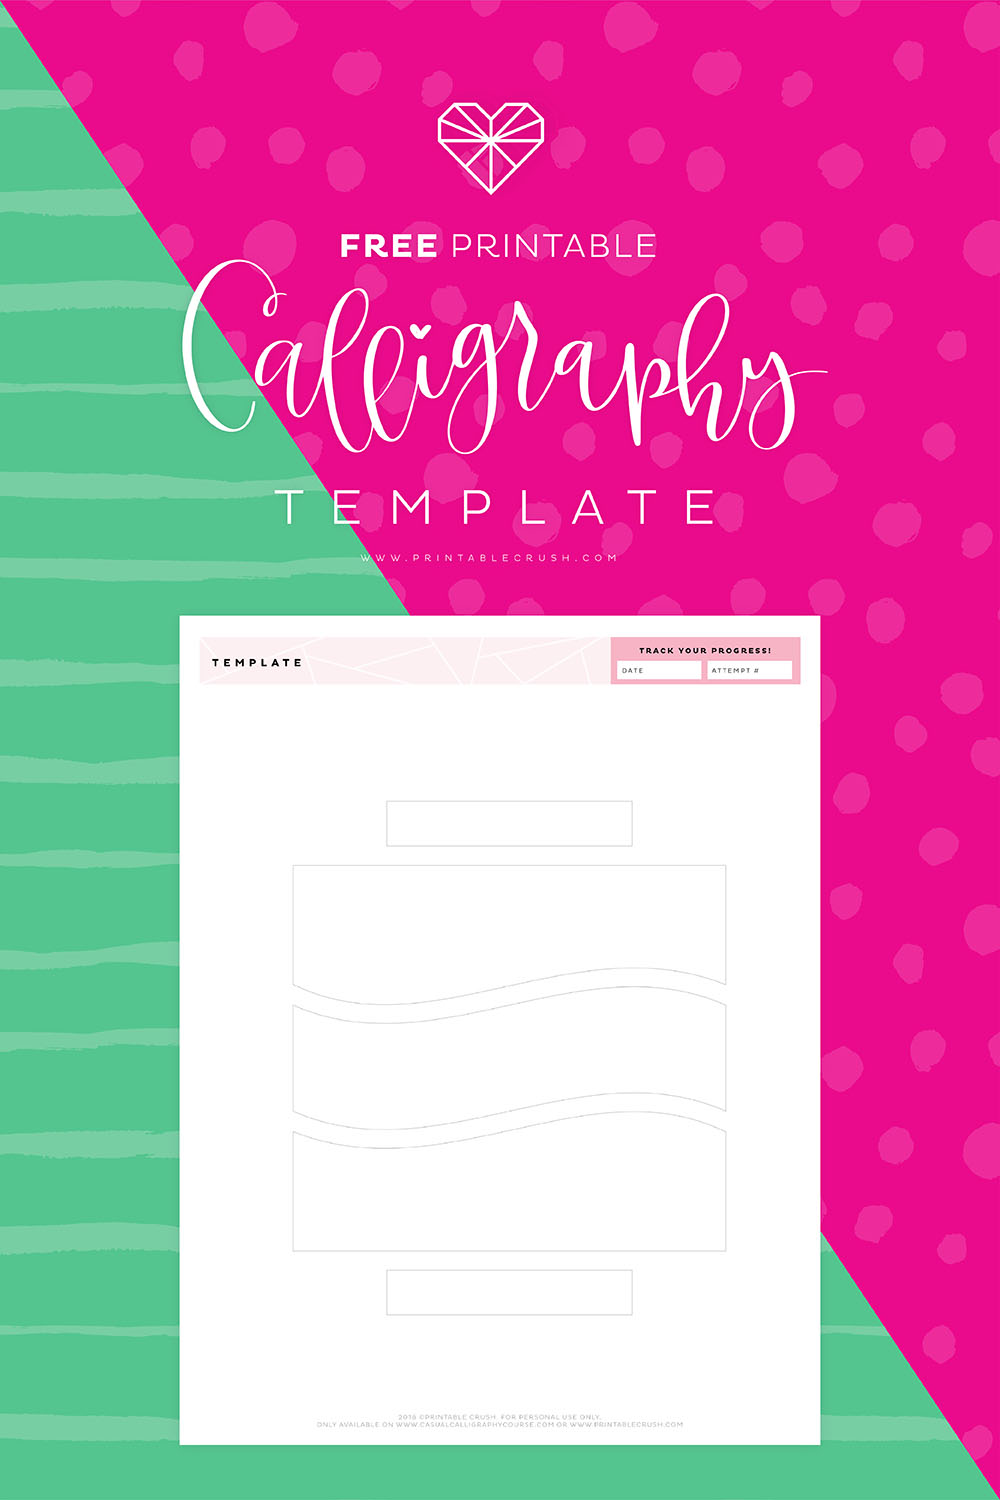 Get those calligraphy layout ideas rolling with this FREE Printable Calligraphy Template! You can use this with calligraphy pens or brush pens. #casualcalligraphy #calligraphytemplate #casualcalligraphycourse #brushlettering #calligraphy #letteringideas #letteringworksheets #calligraphyworksheets #moderncalligraphy